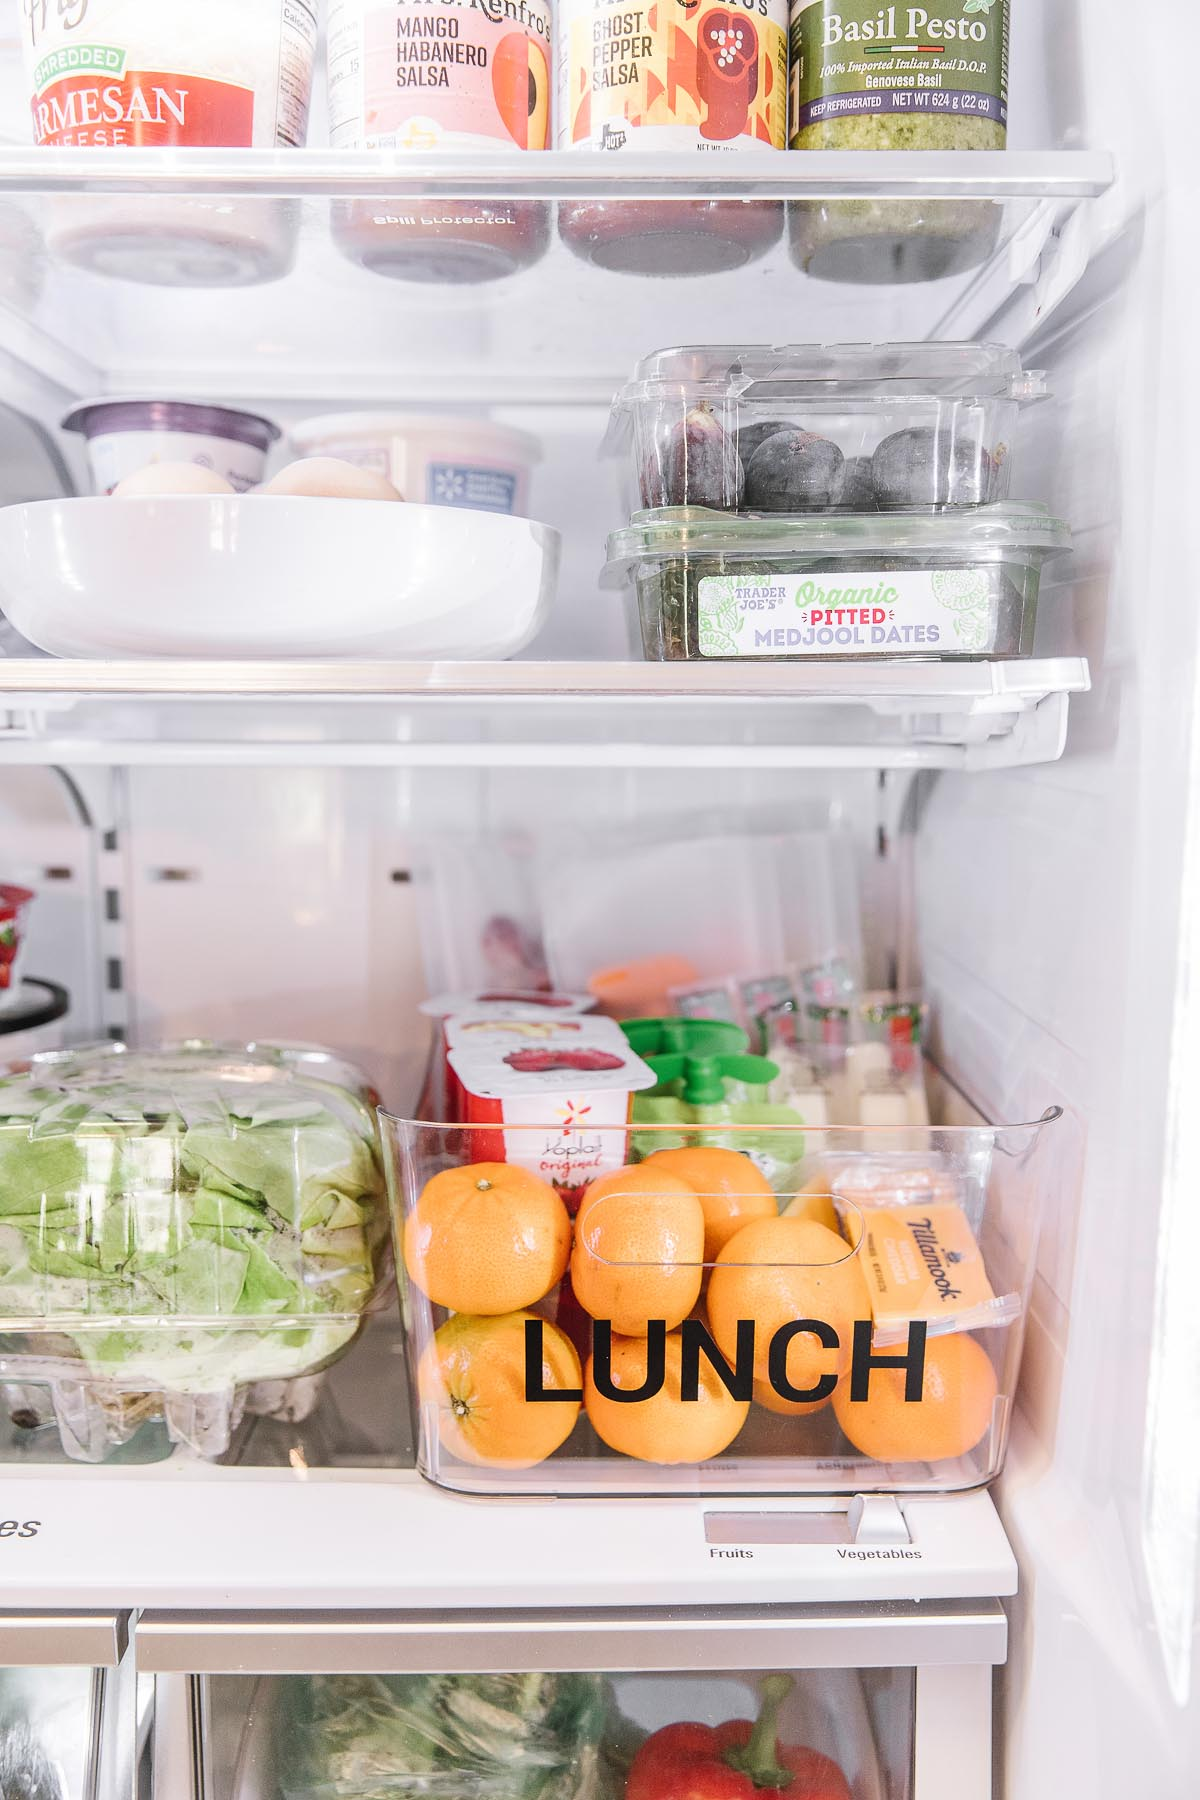 A fridge filled with food including a plastic container with the word lunch in black letters filled with oranges, yogurt, applesauce, cheese and veggies. Perfect school lunch ideas!